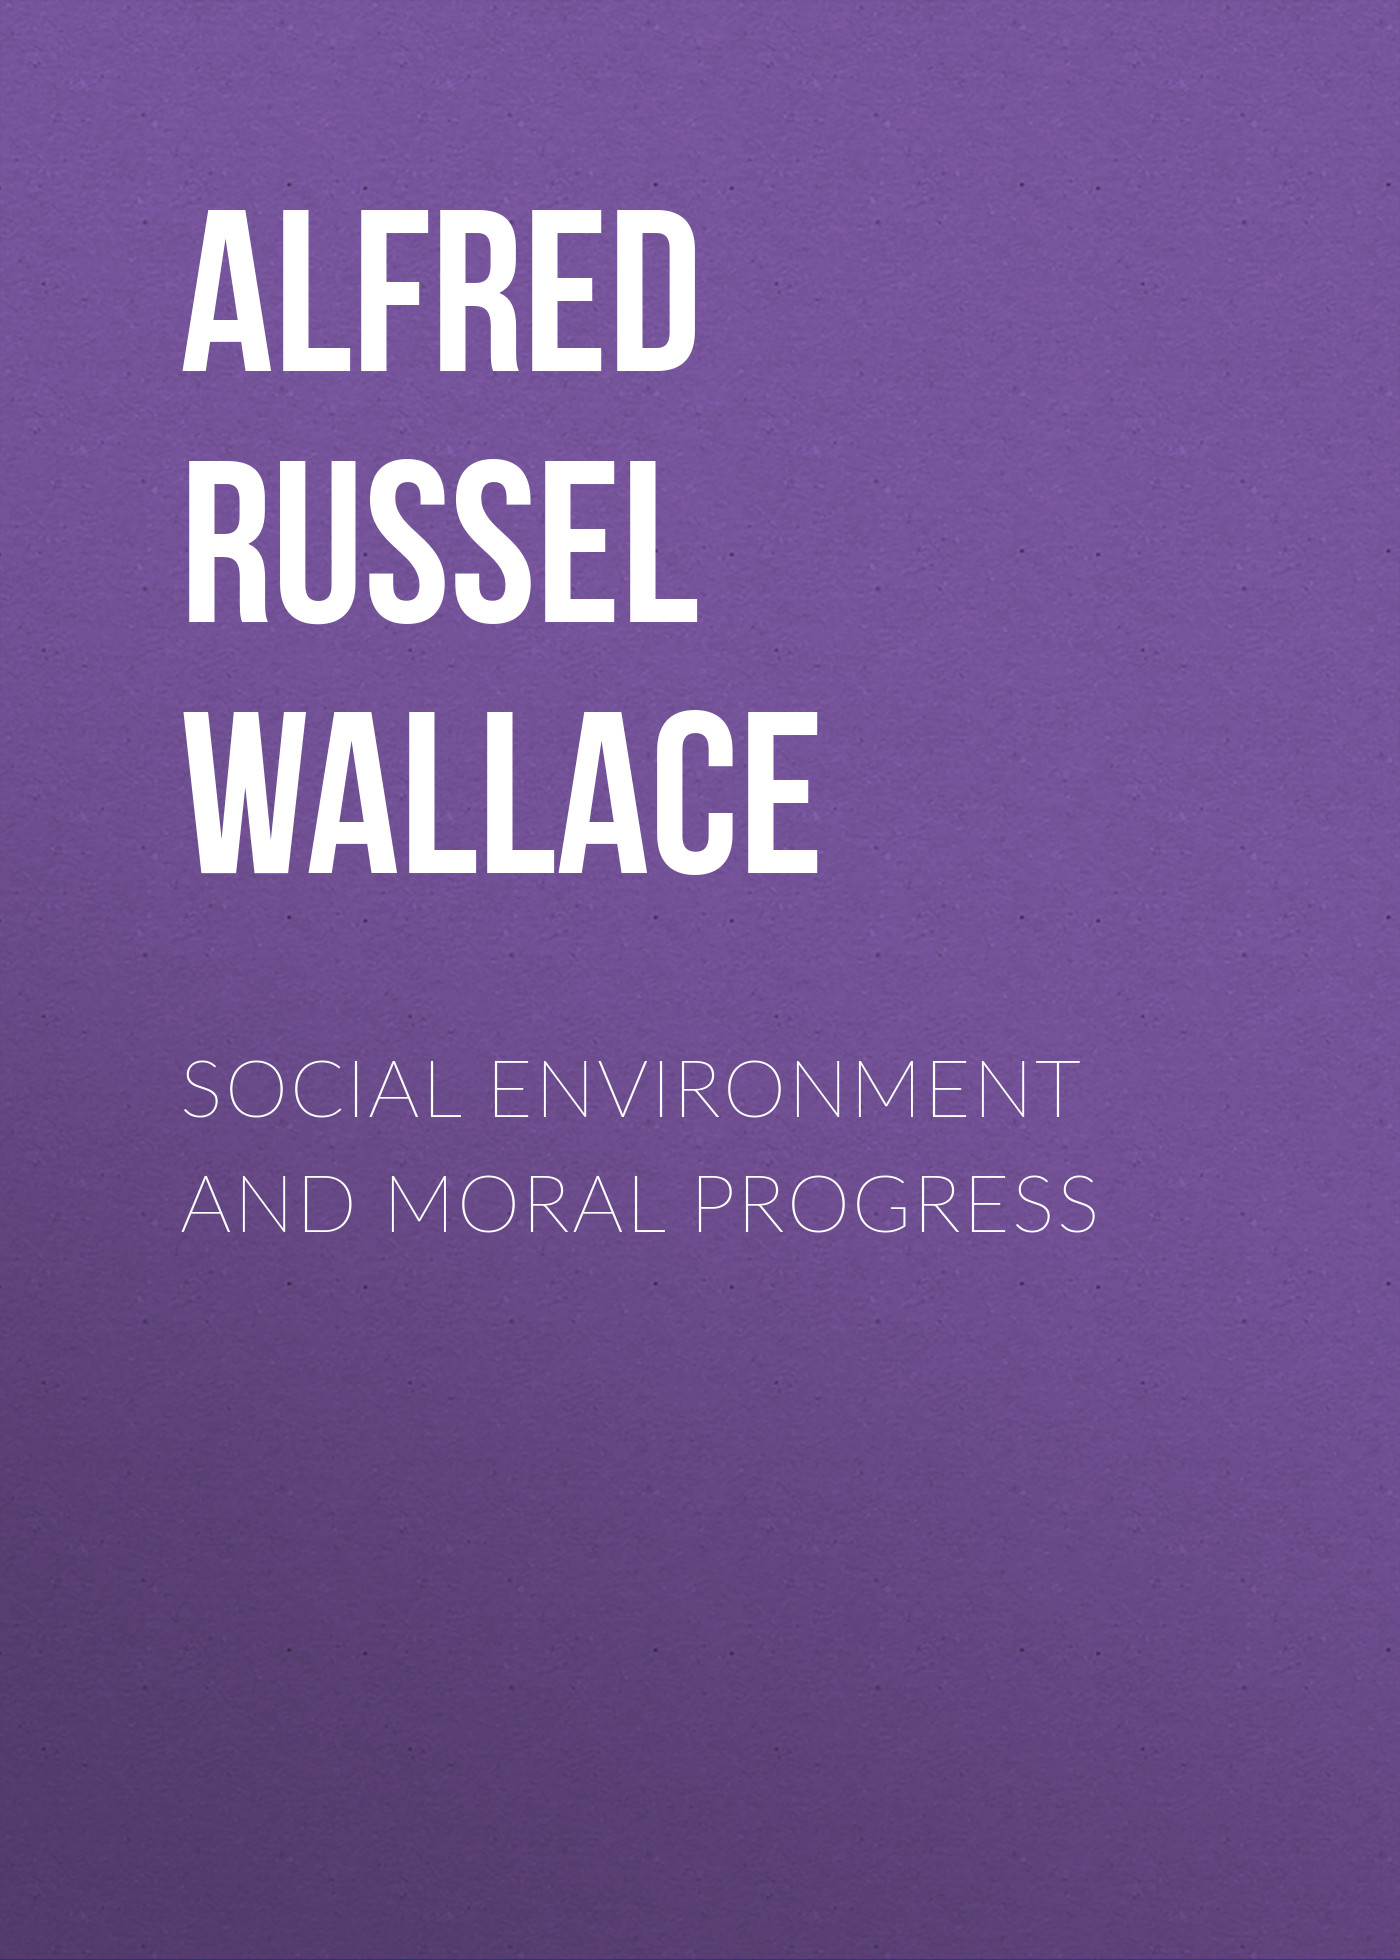 купить Alfred Russel Wallace Social Environment and Moral Progress